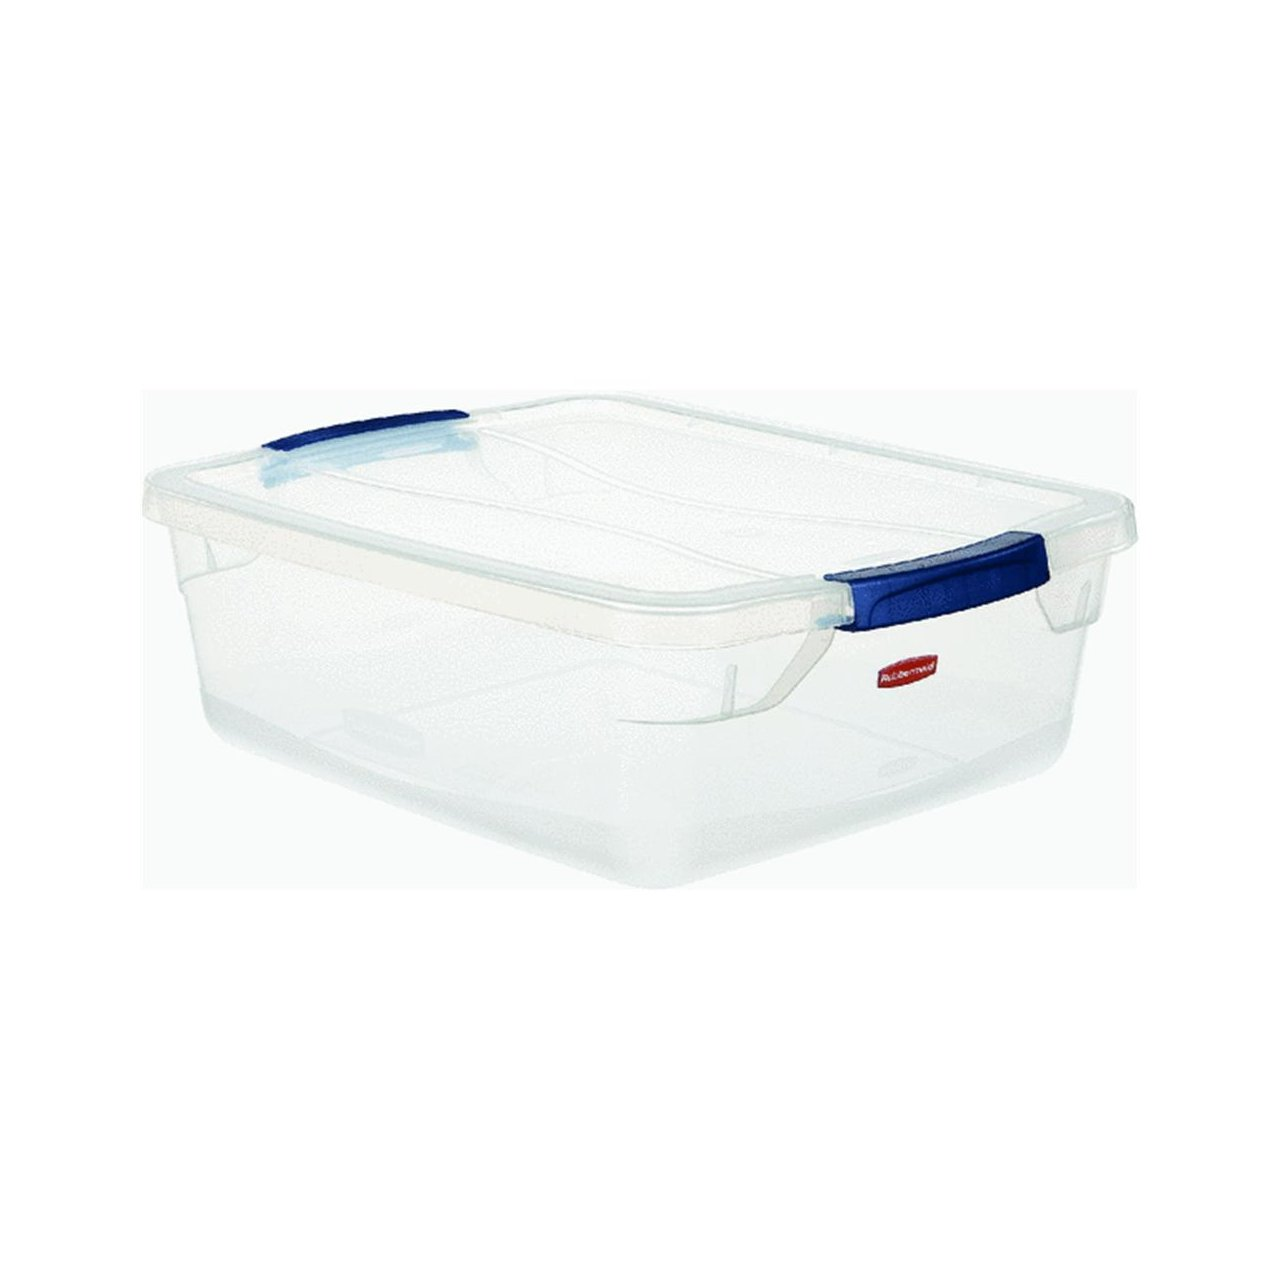 Newell Rubbermaid Home 15Qt Clear Zone Latches 3Q2200CLMCB